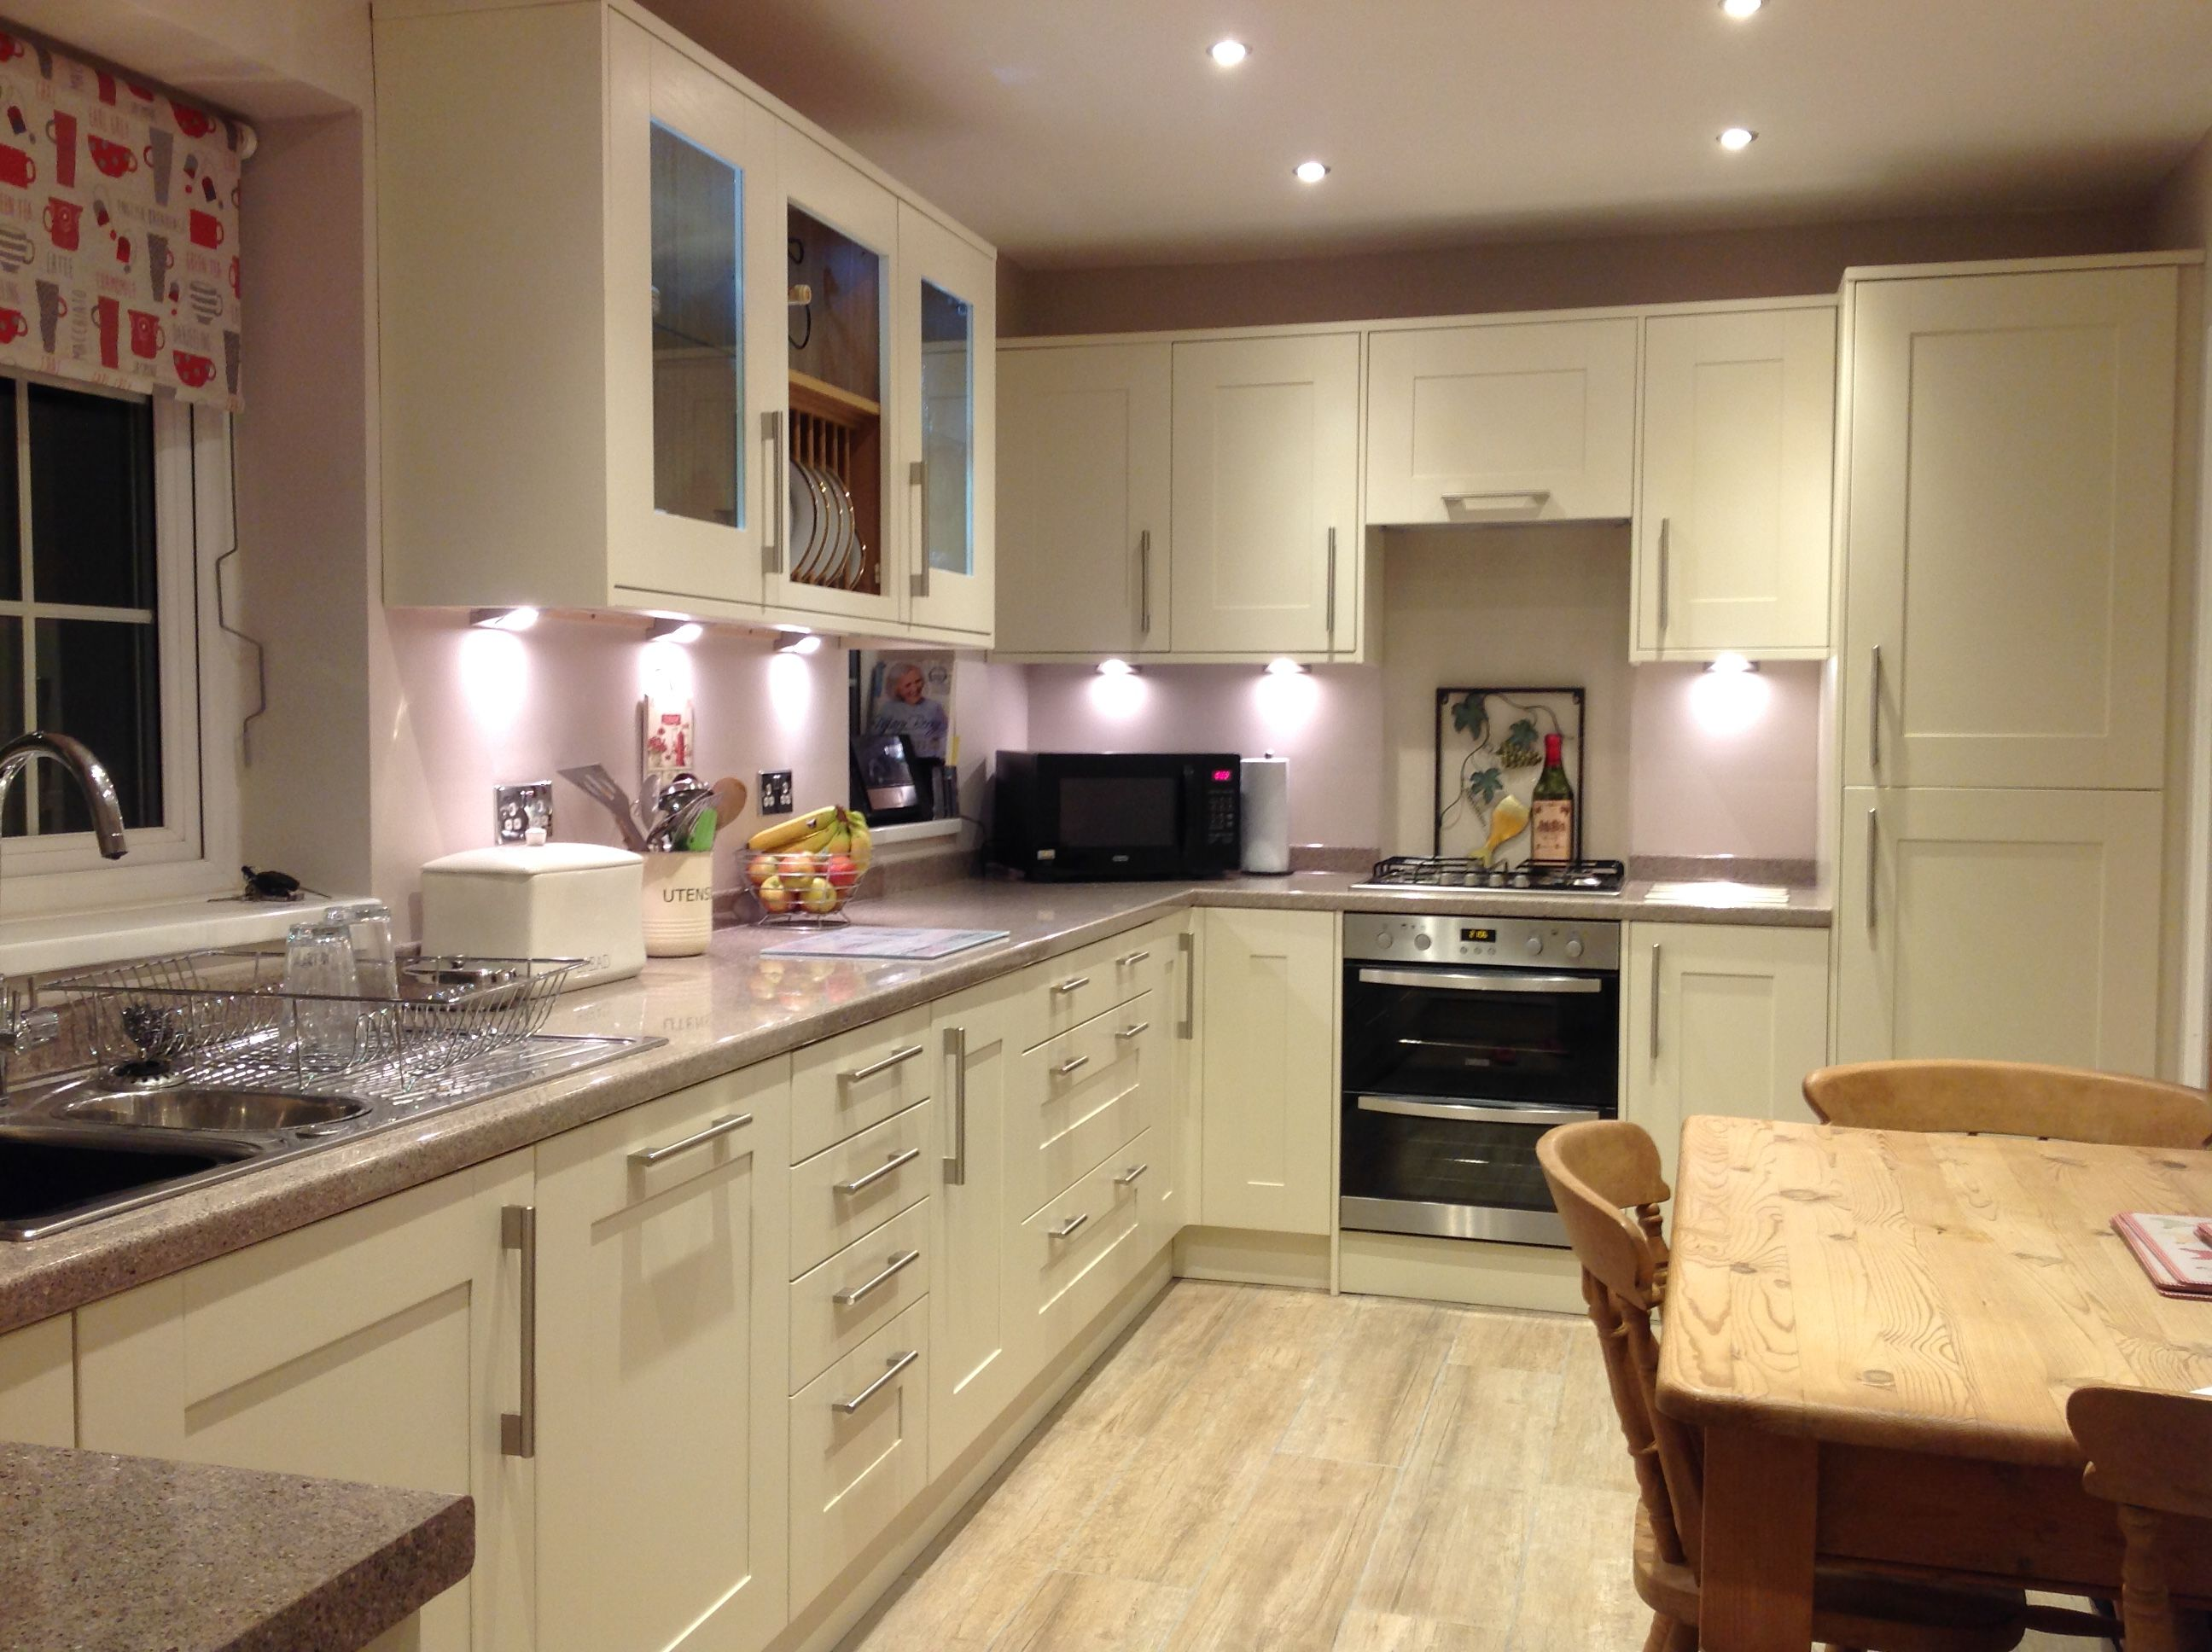 New Kitchen Ideas My New Kitchen Wickes Tiverton Bone With Mello Mocha Walls